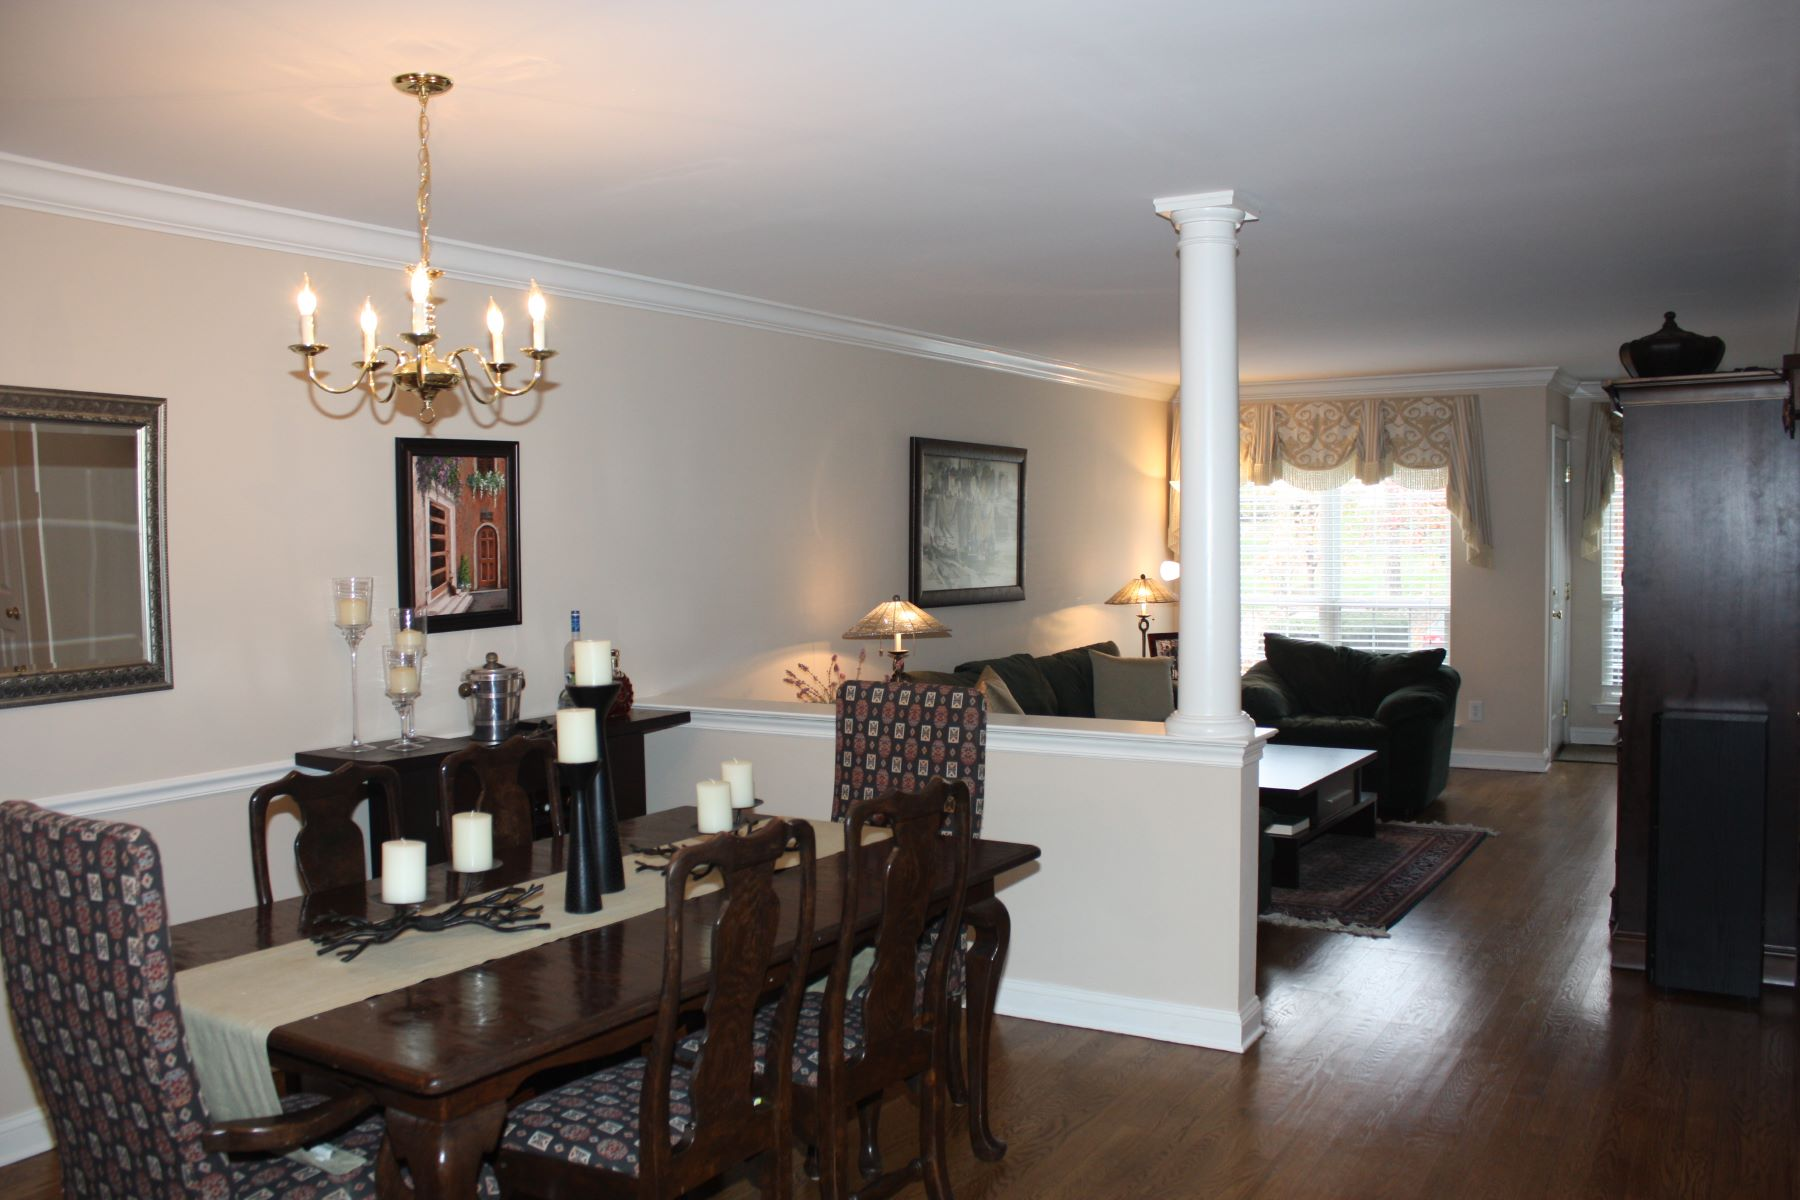 Townhouse for Rent at 1900 Model Townhouse 16 Hopkinson Court Basking Ridge, New Jersey 07920 United States